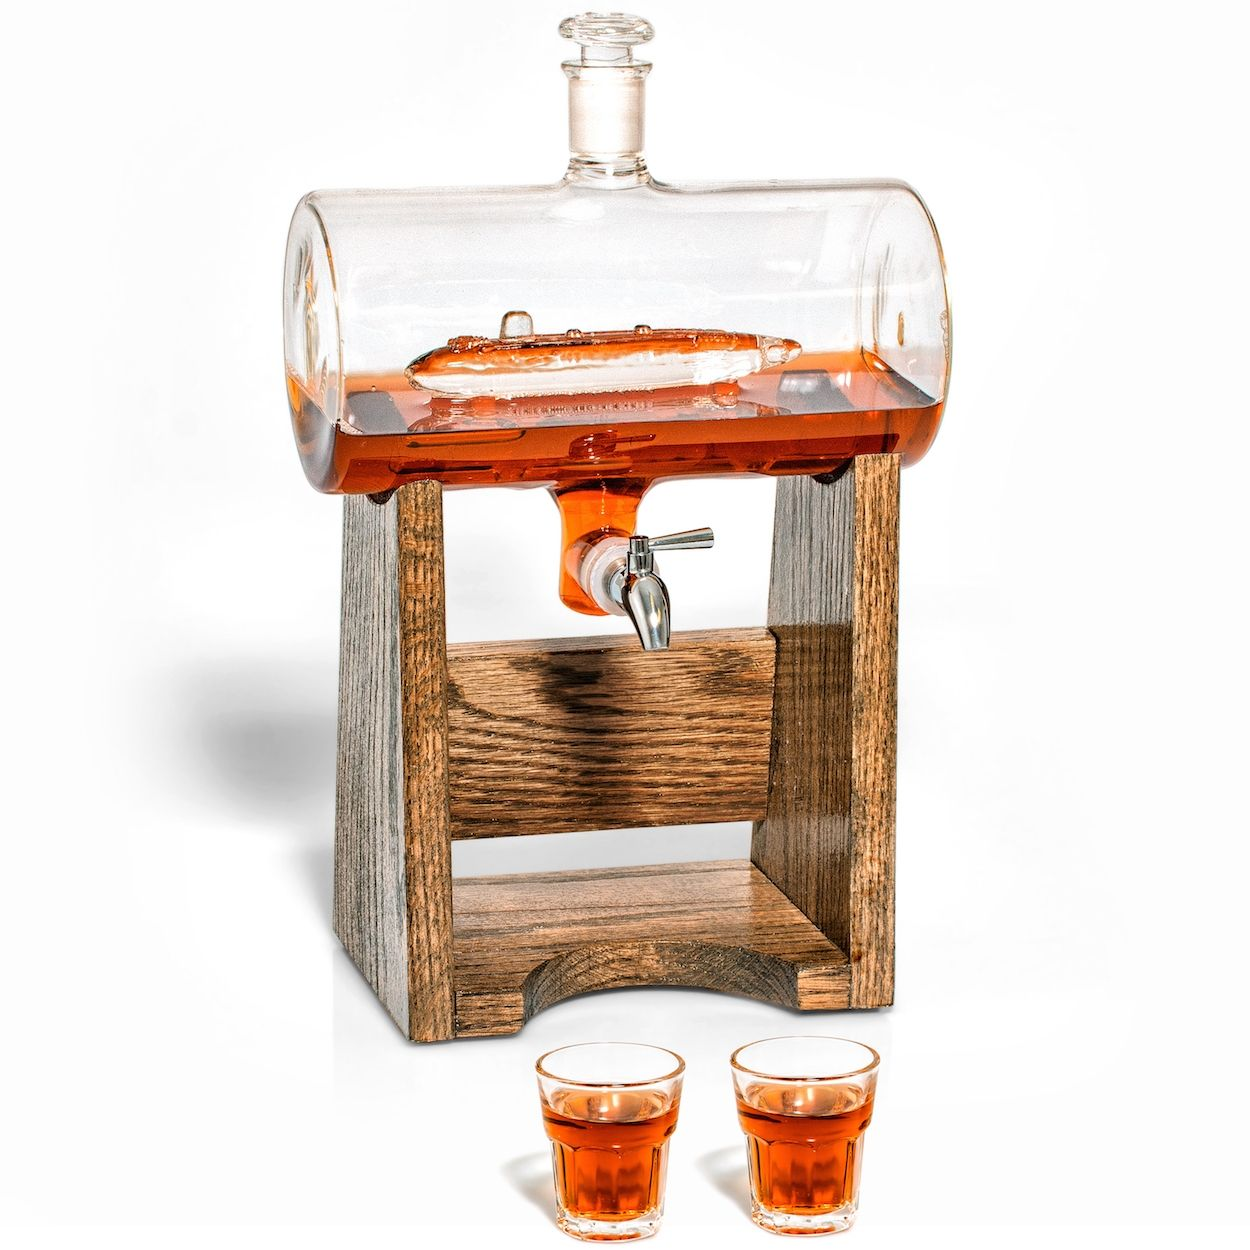 Submarine Decanter with Spigot and Shot Glasses